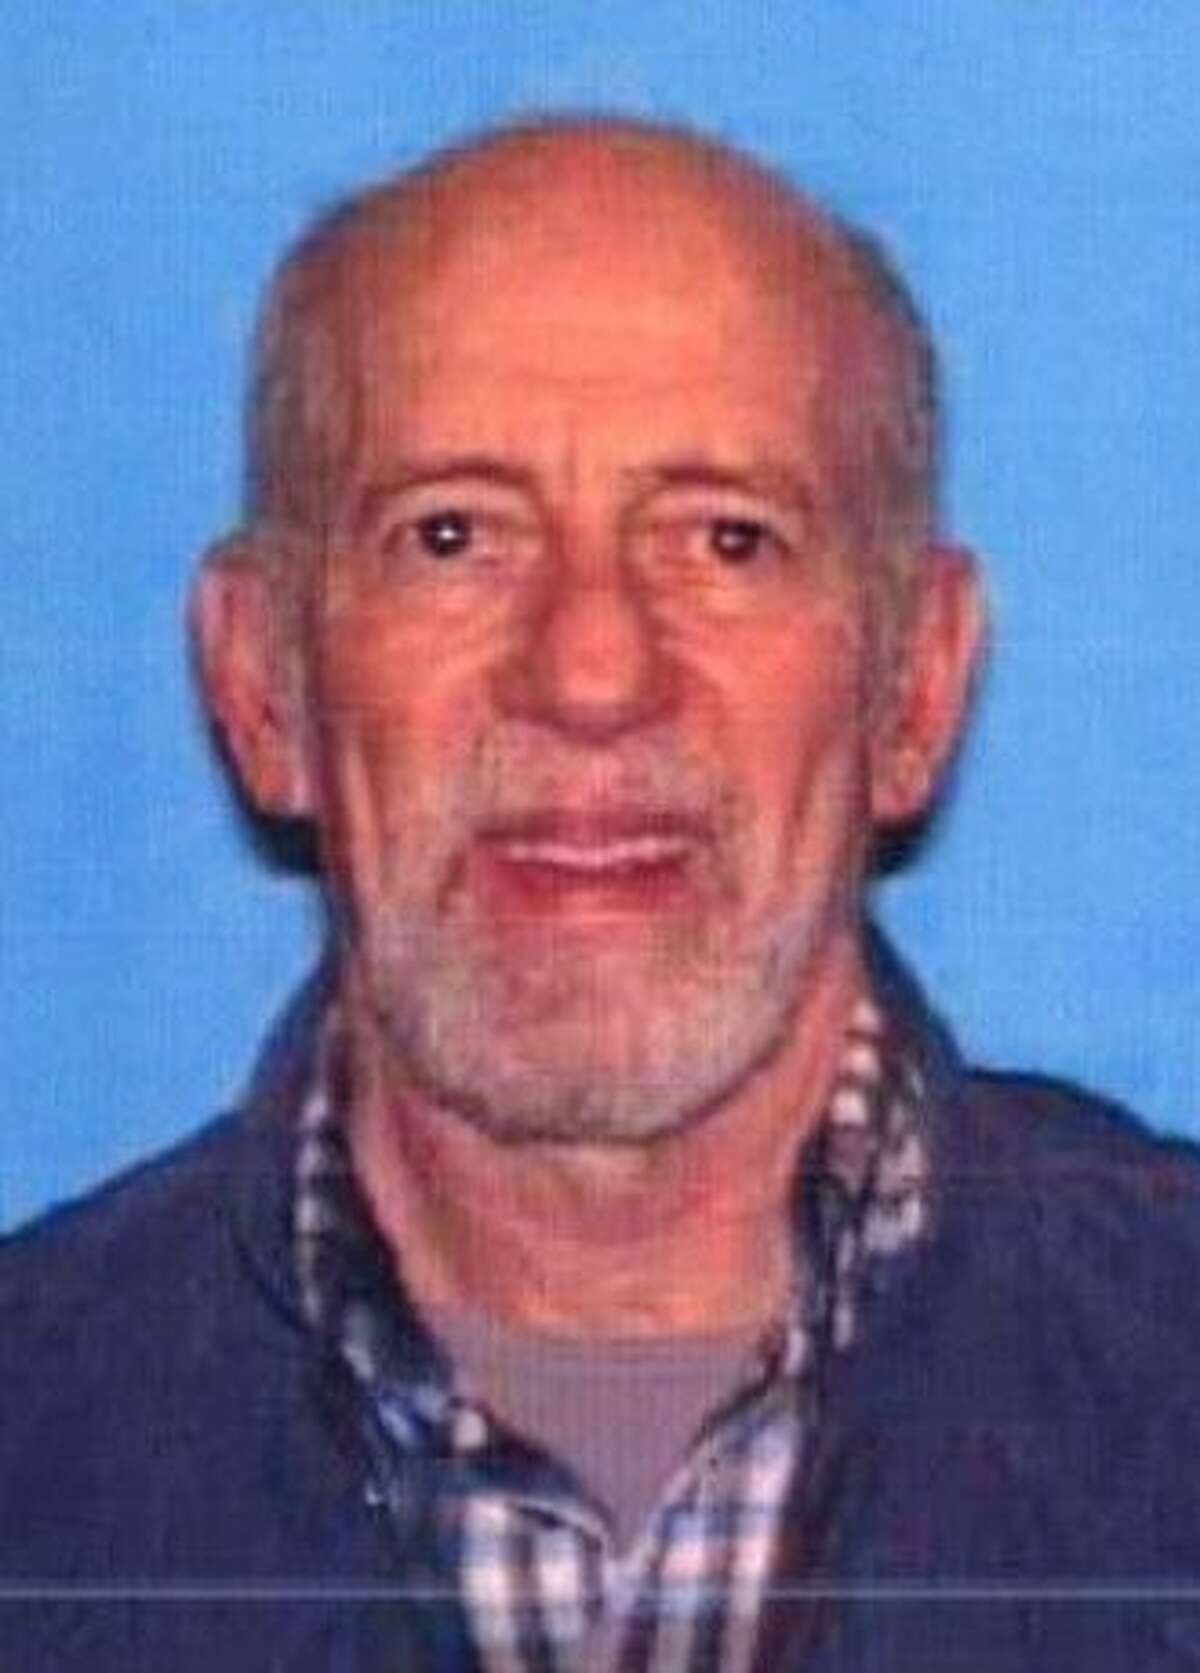 Peter Cukor, who was killed by an intruder at his home in Berkeley Saturday, Feb. 19, 2012.